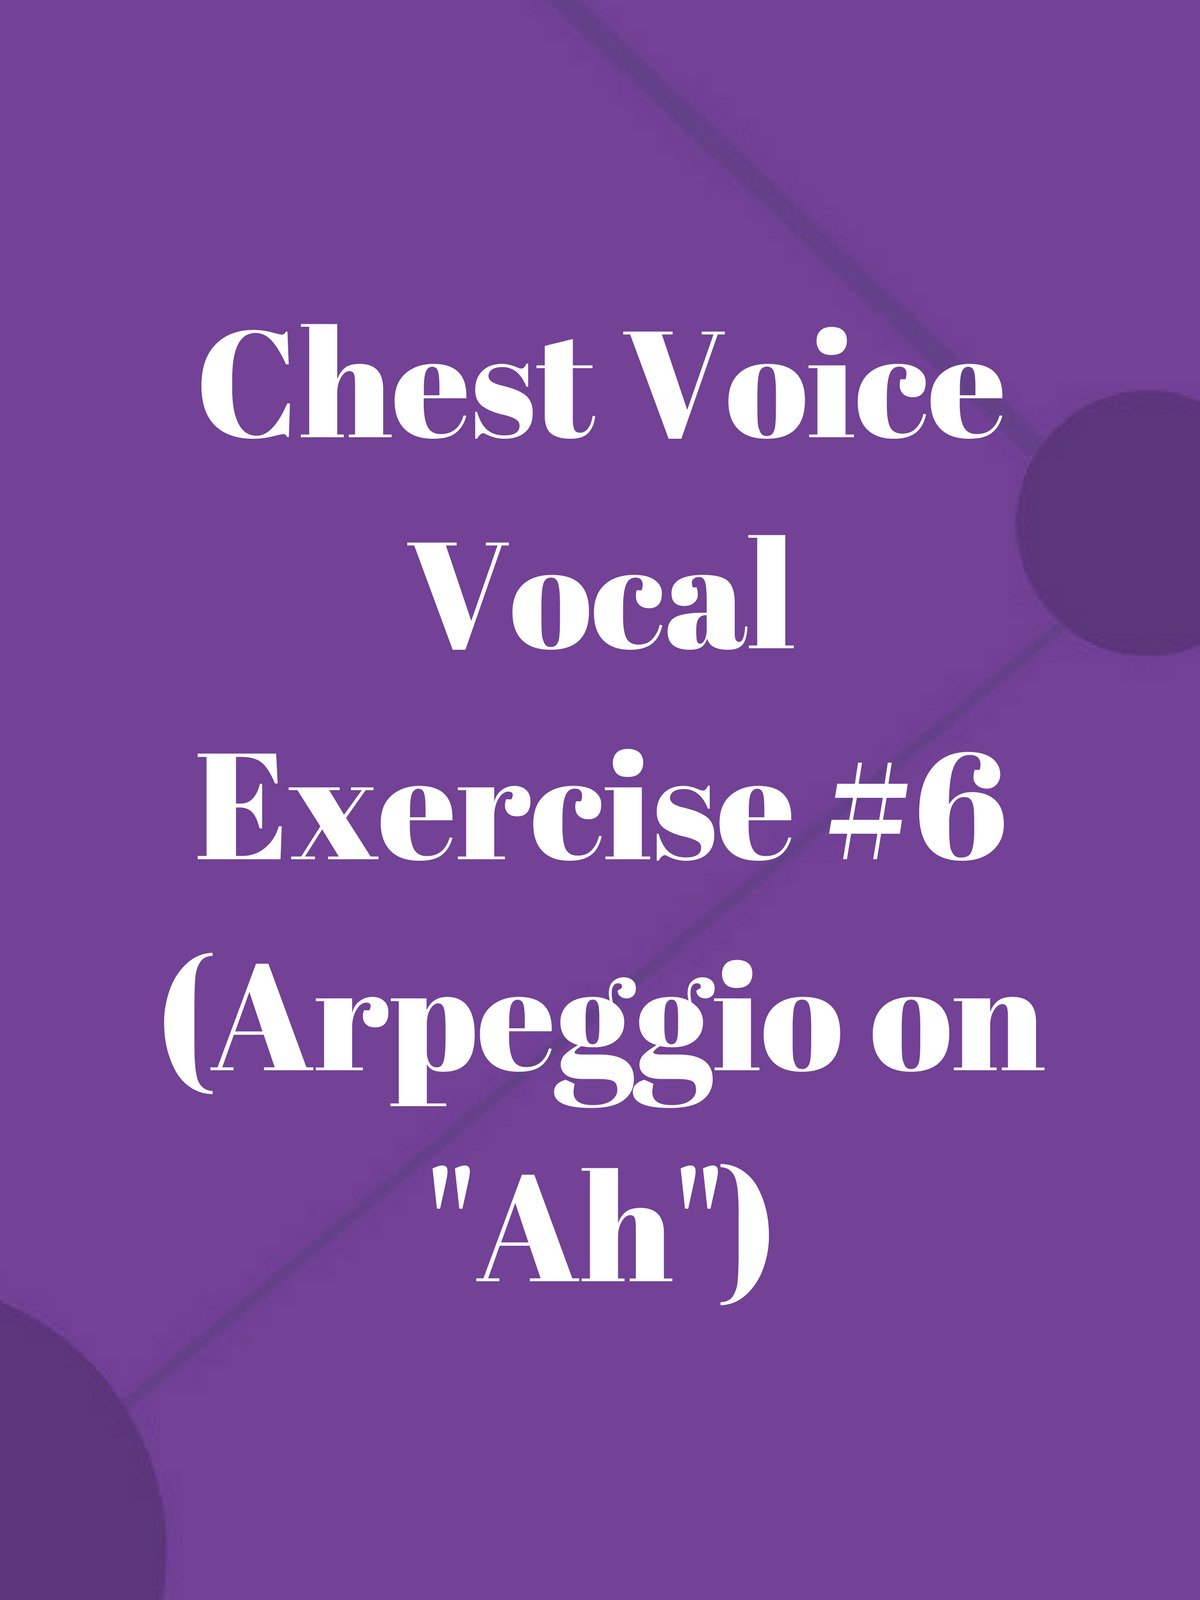 """Chest Voice Vocal Exercise #6 (Arpeggio on """"Ah"""")"""